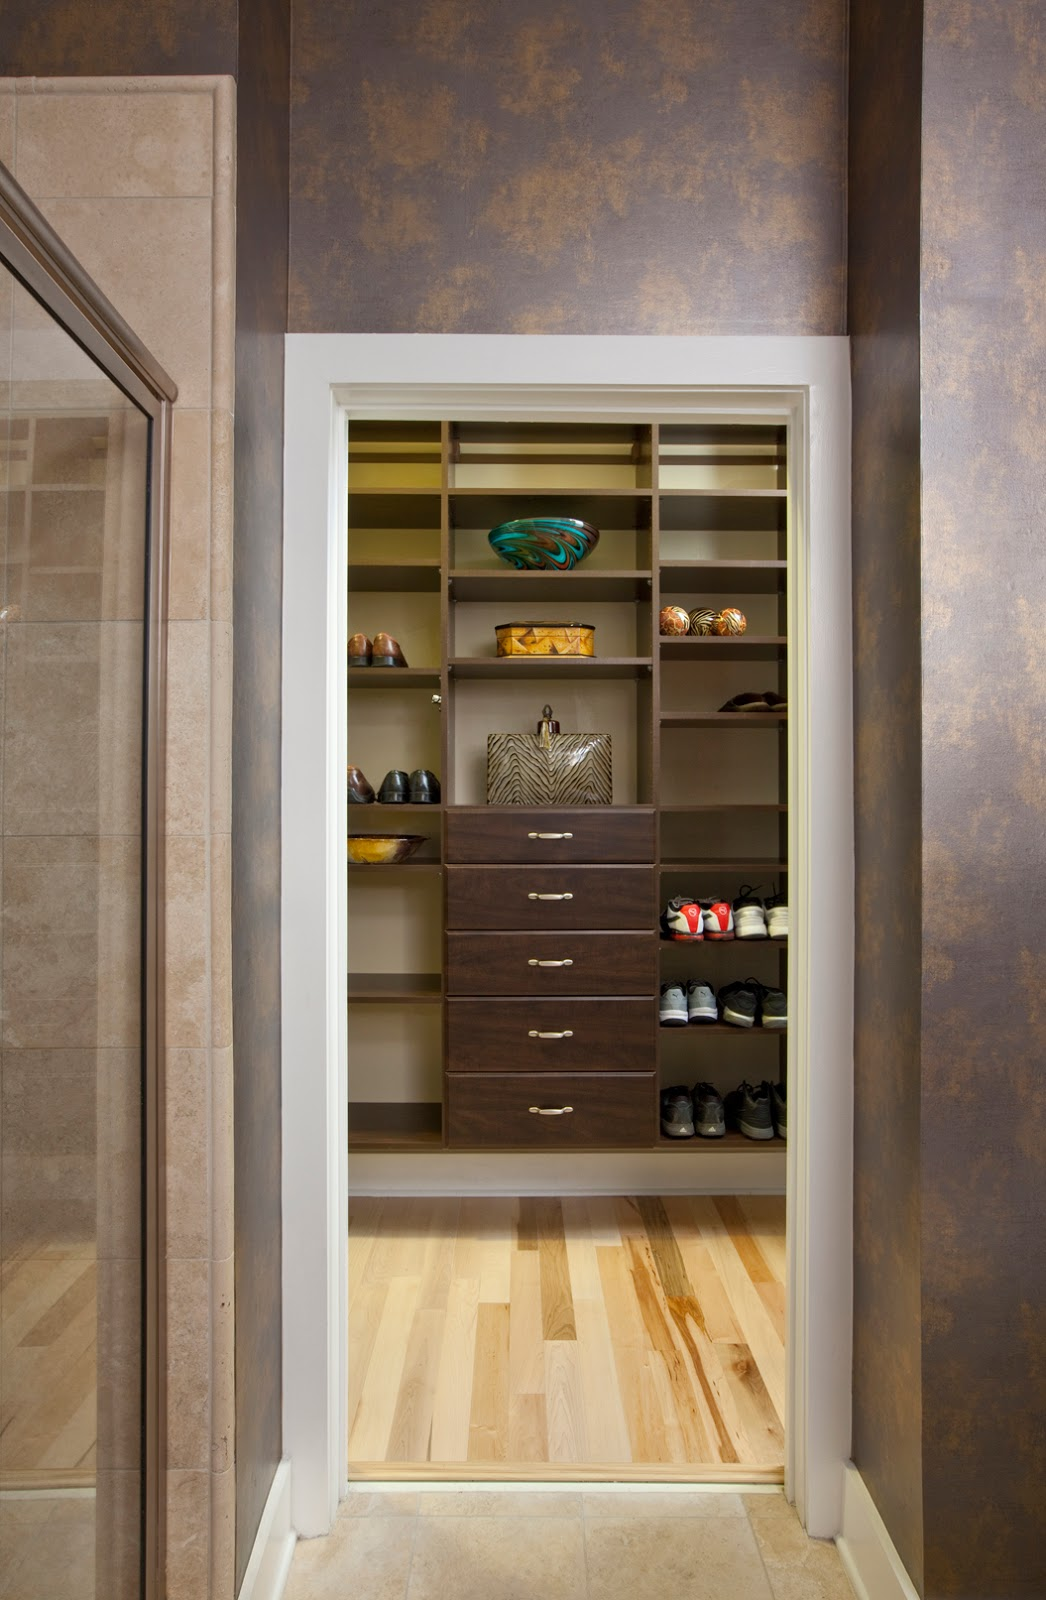 Dark wood custom closet designed by Robin LaMonte of Rooms Revamped Interior Design